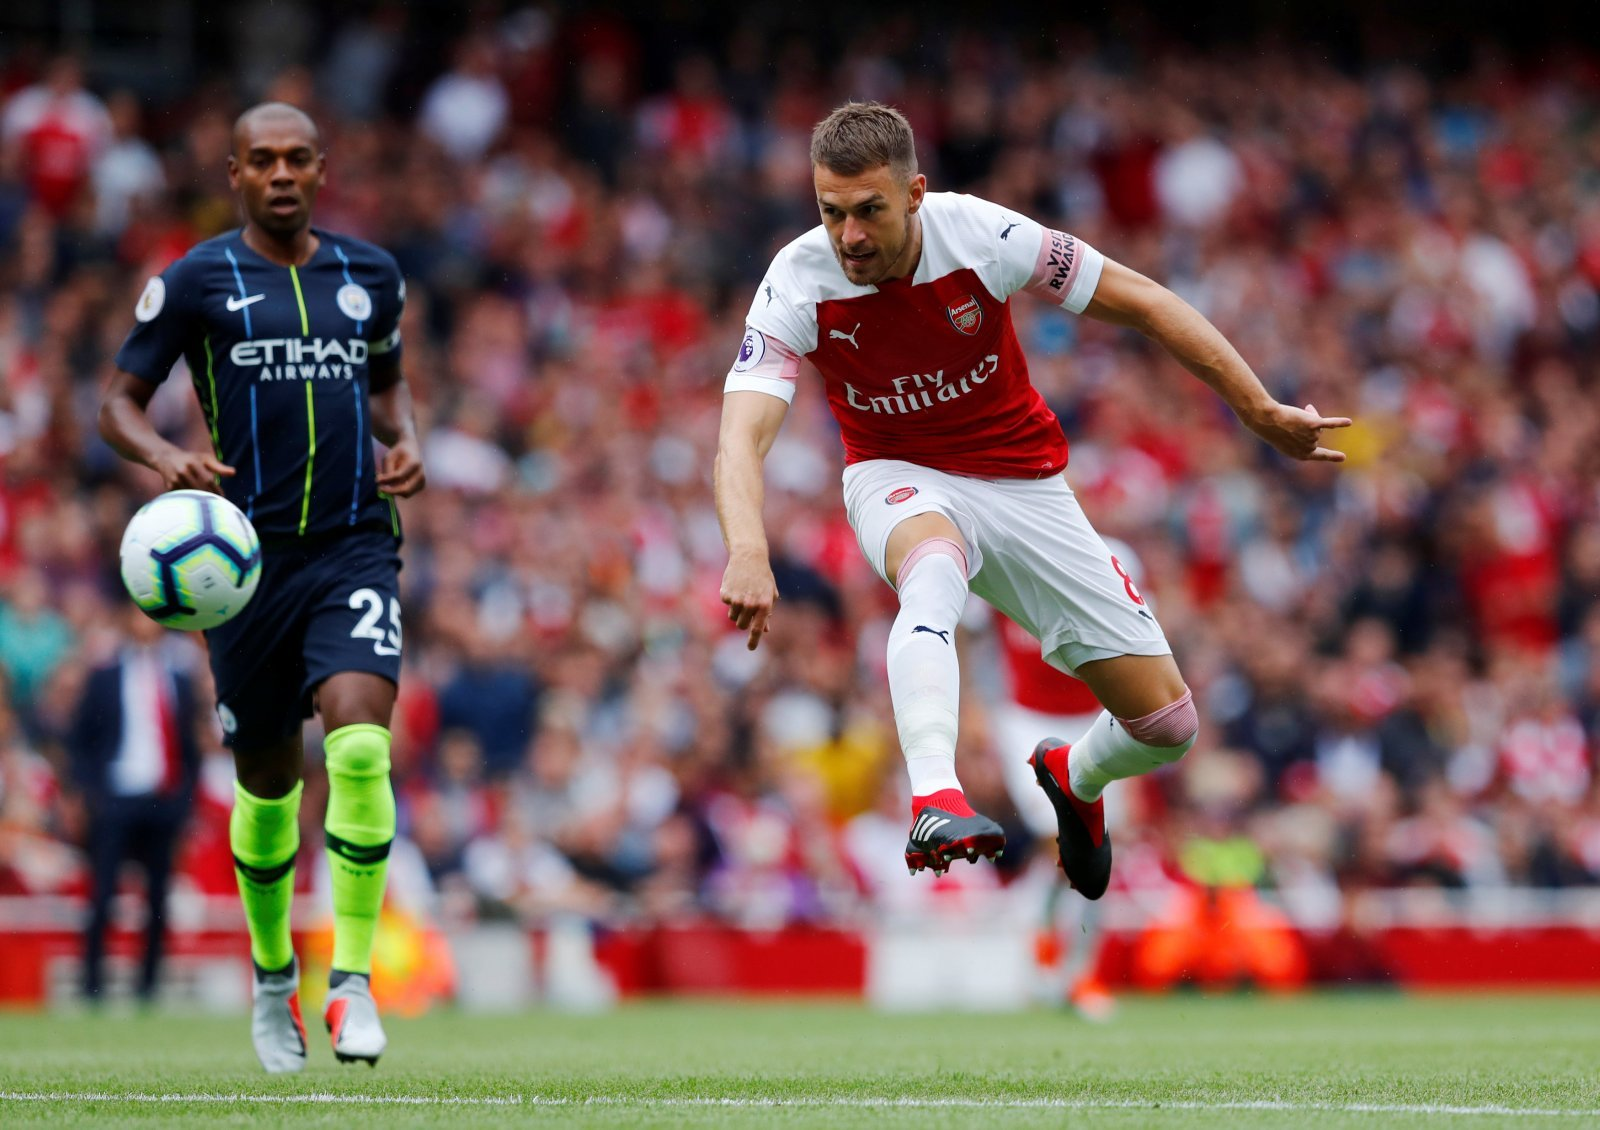 Opinion: Everton can make a real statement by signing Ramsey in January